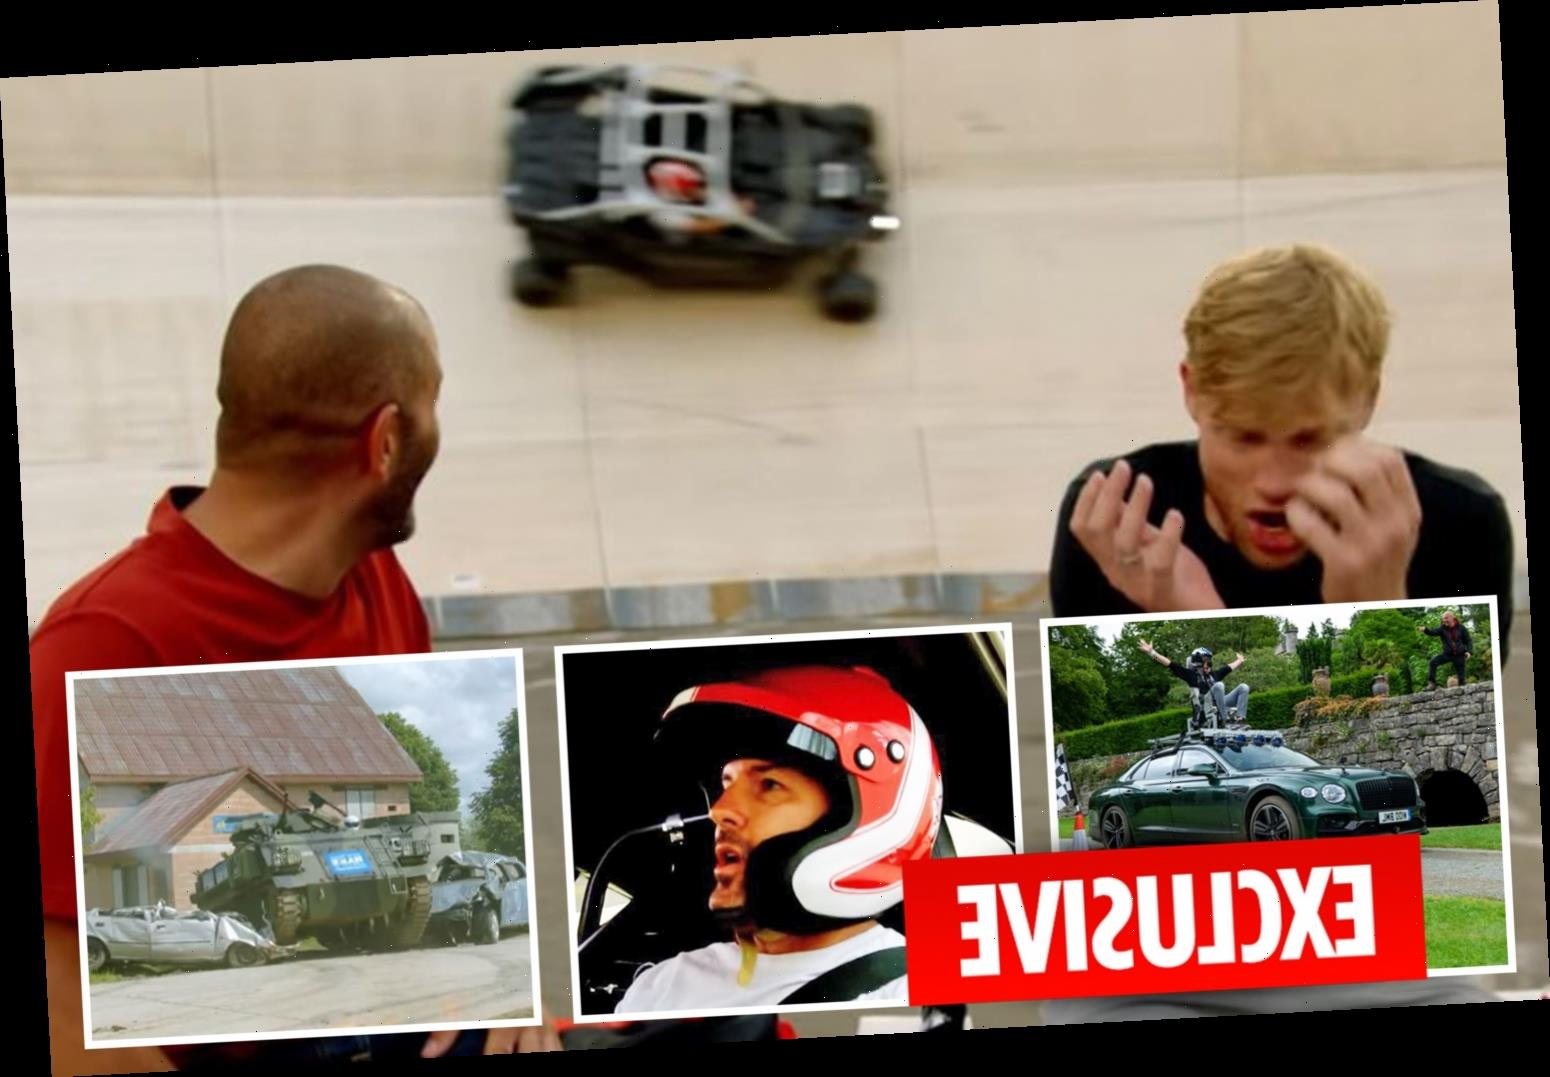 Top Gear is back as Paddy McGuinness fears for his life in Wall of Death stunt in our first look at the new series